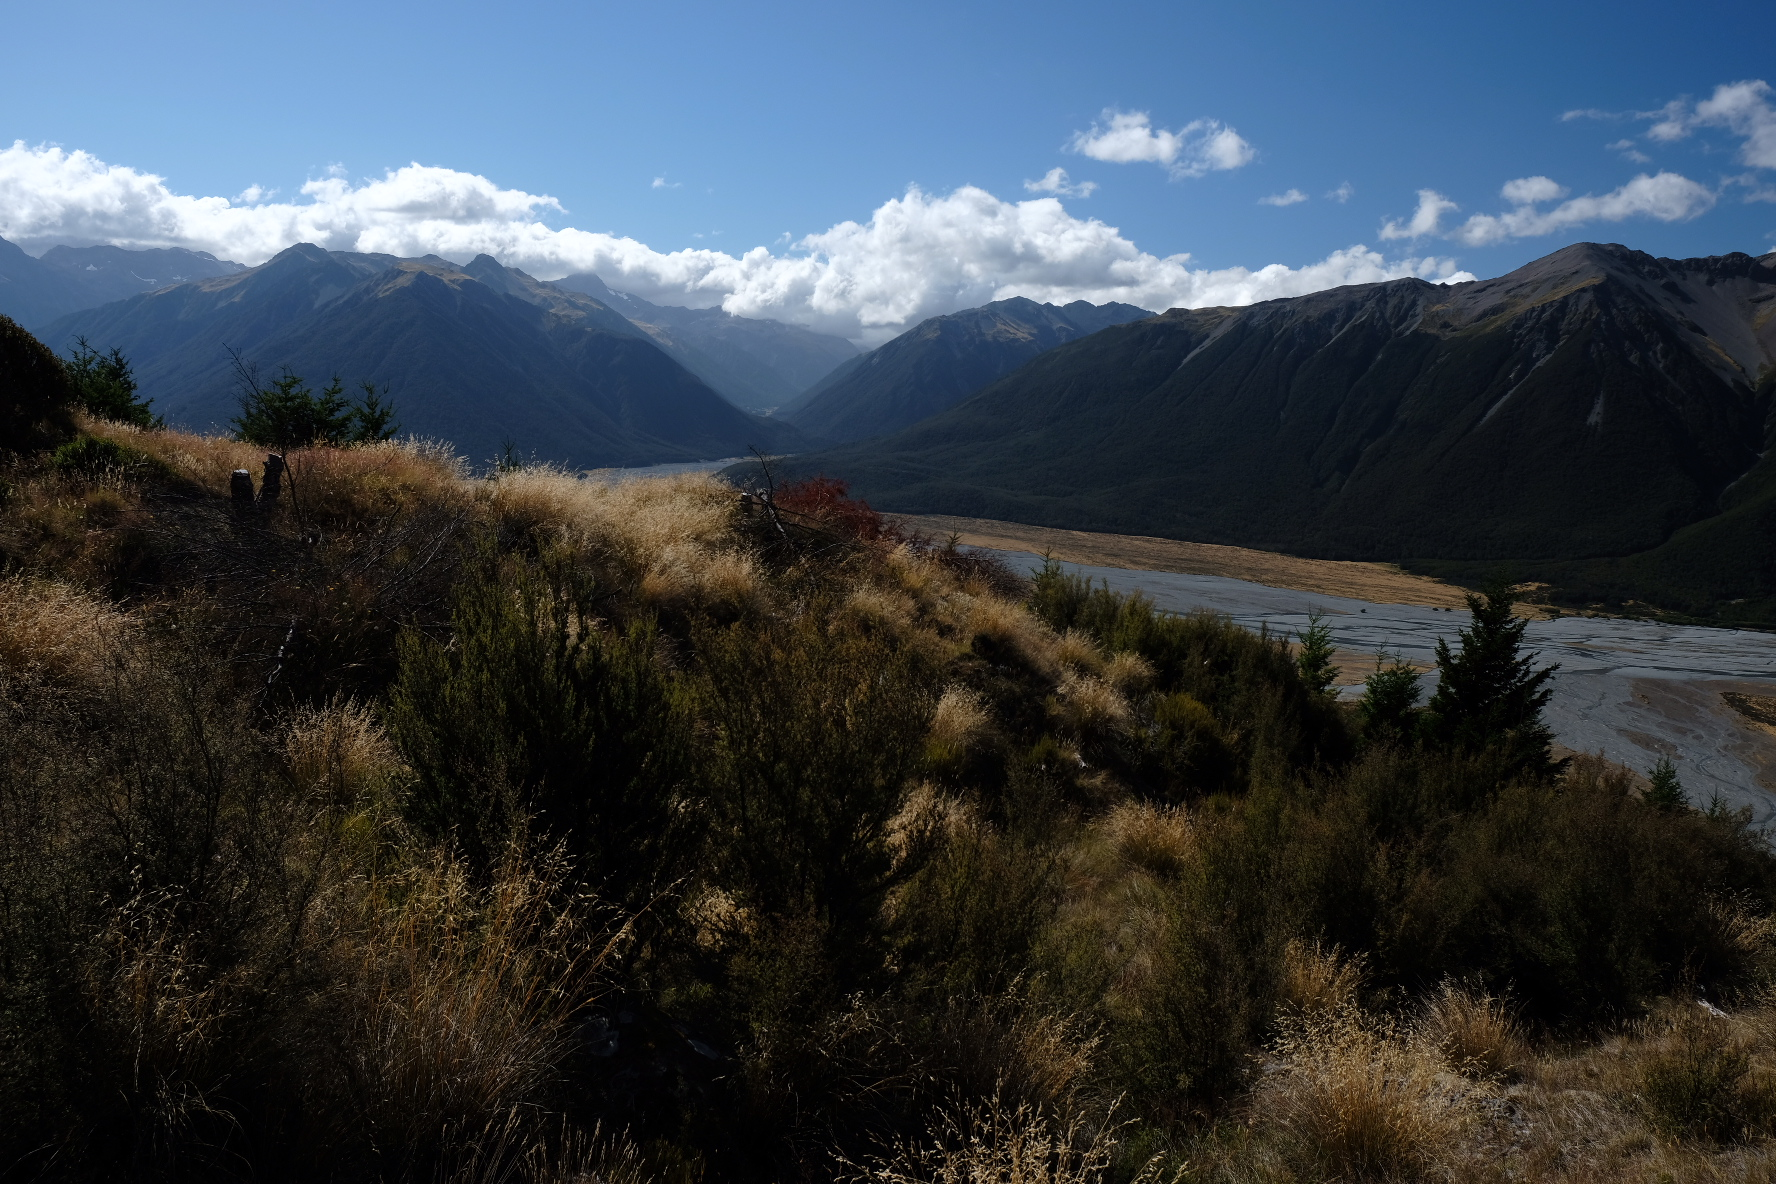 Looking down into the Arthur's Pass valley